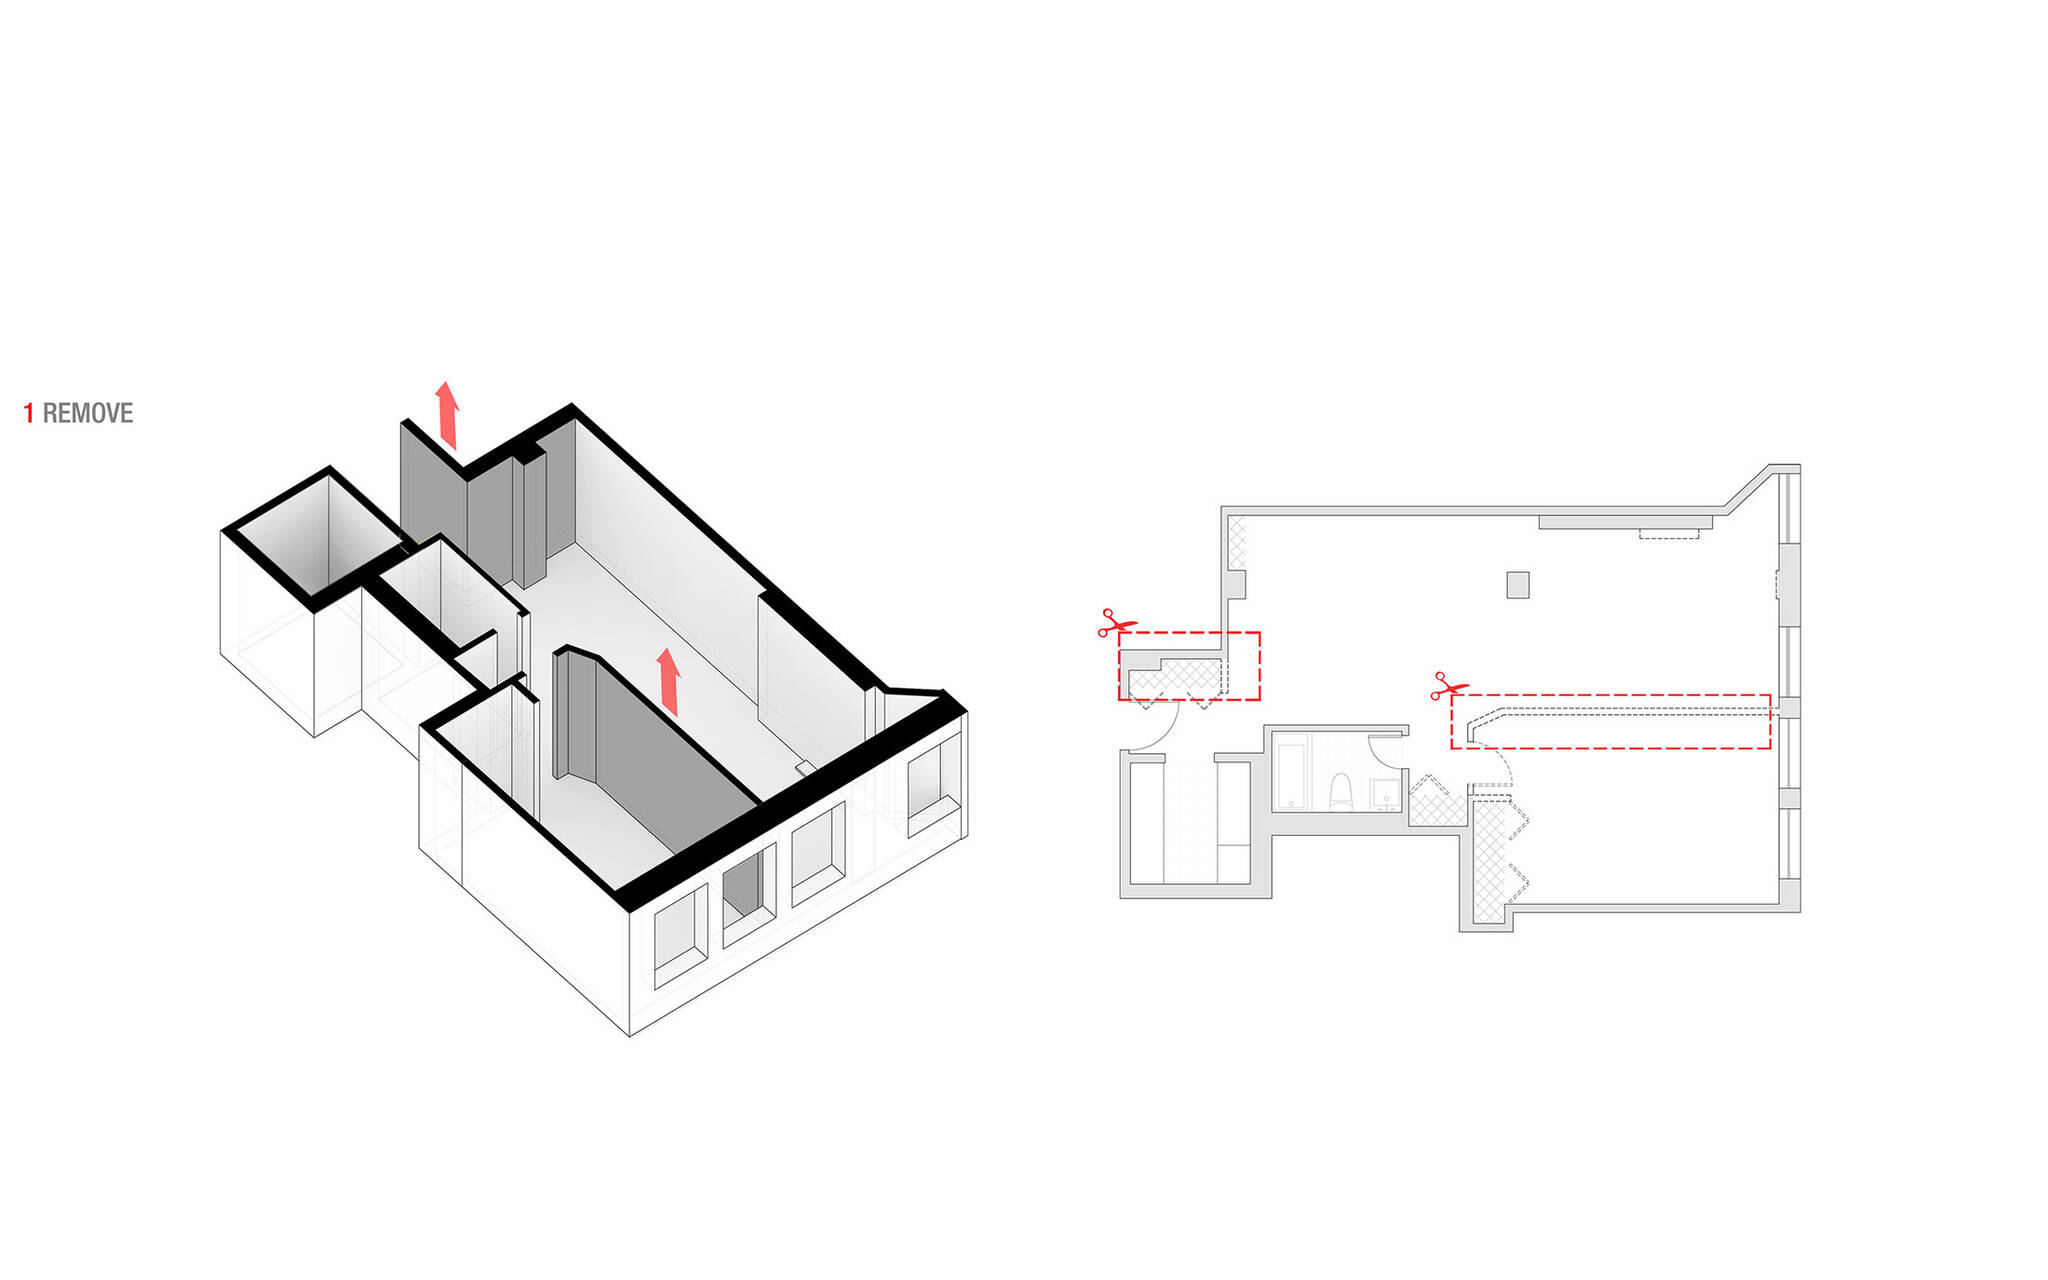 Axonometric view of the project approach of the residence renovation in the Chelsea Mews building on the Flatiron District in Manhattan, New York City designed by the architecture studio Danny Forster & Architecture